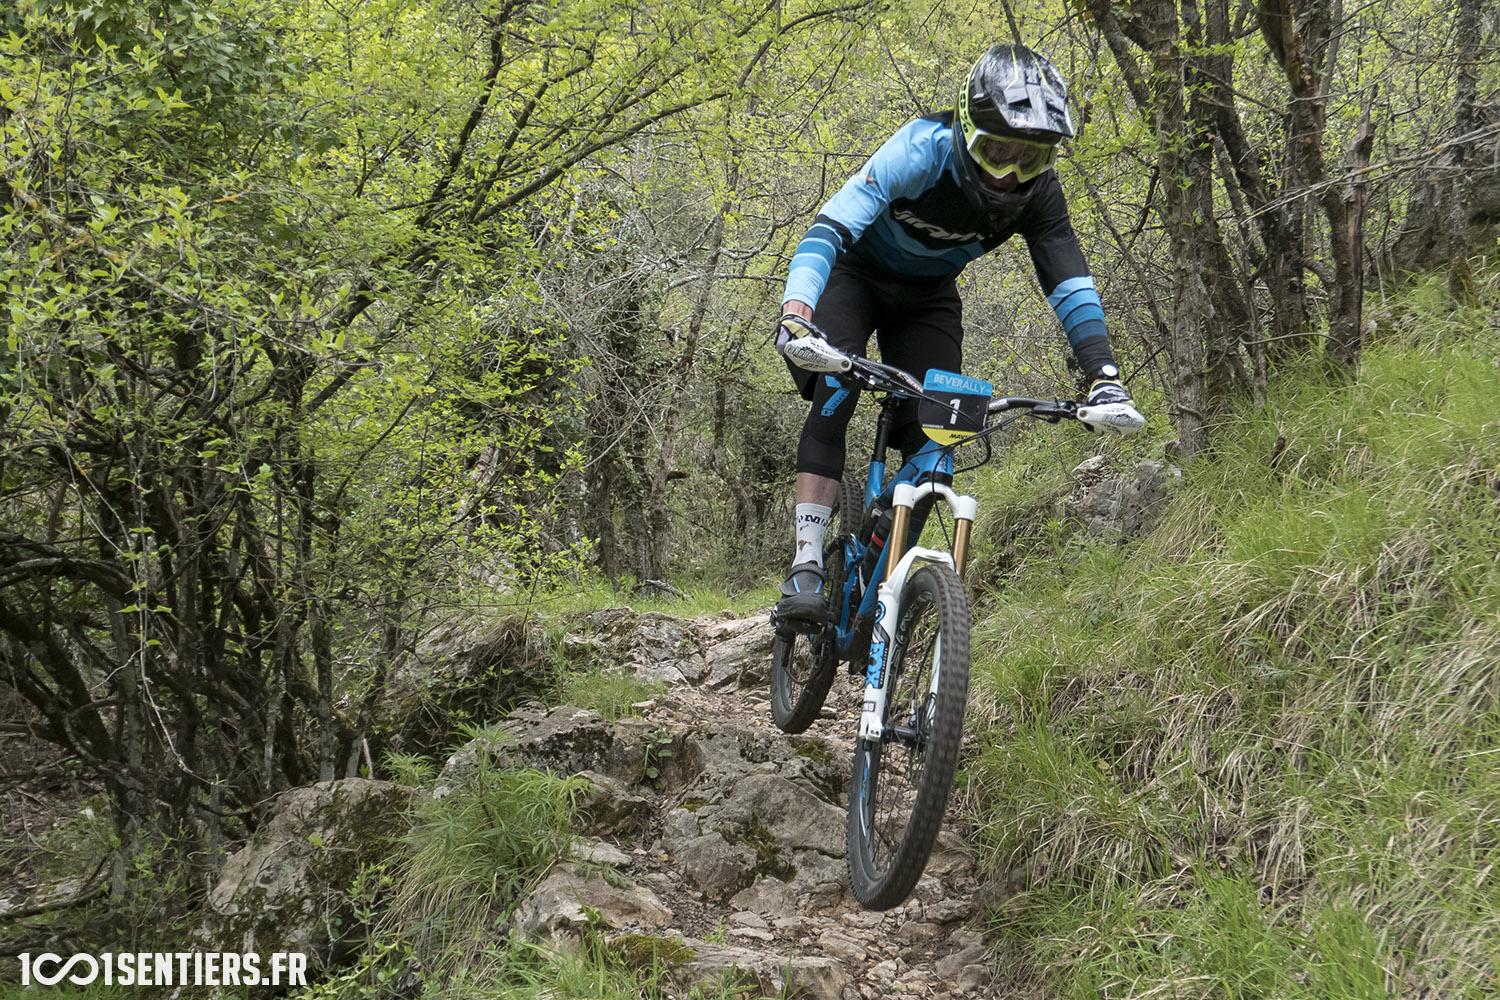 beverally 2016 1001sentiers 1001 enduro tour 10